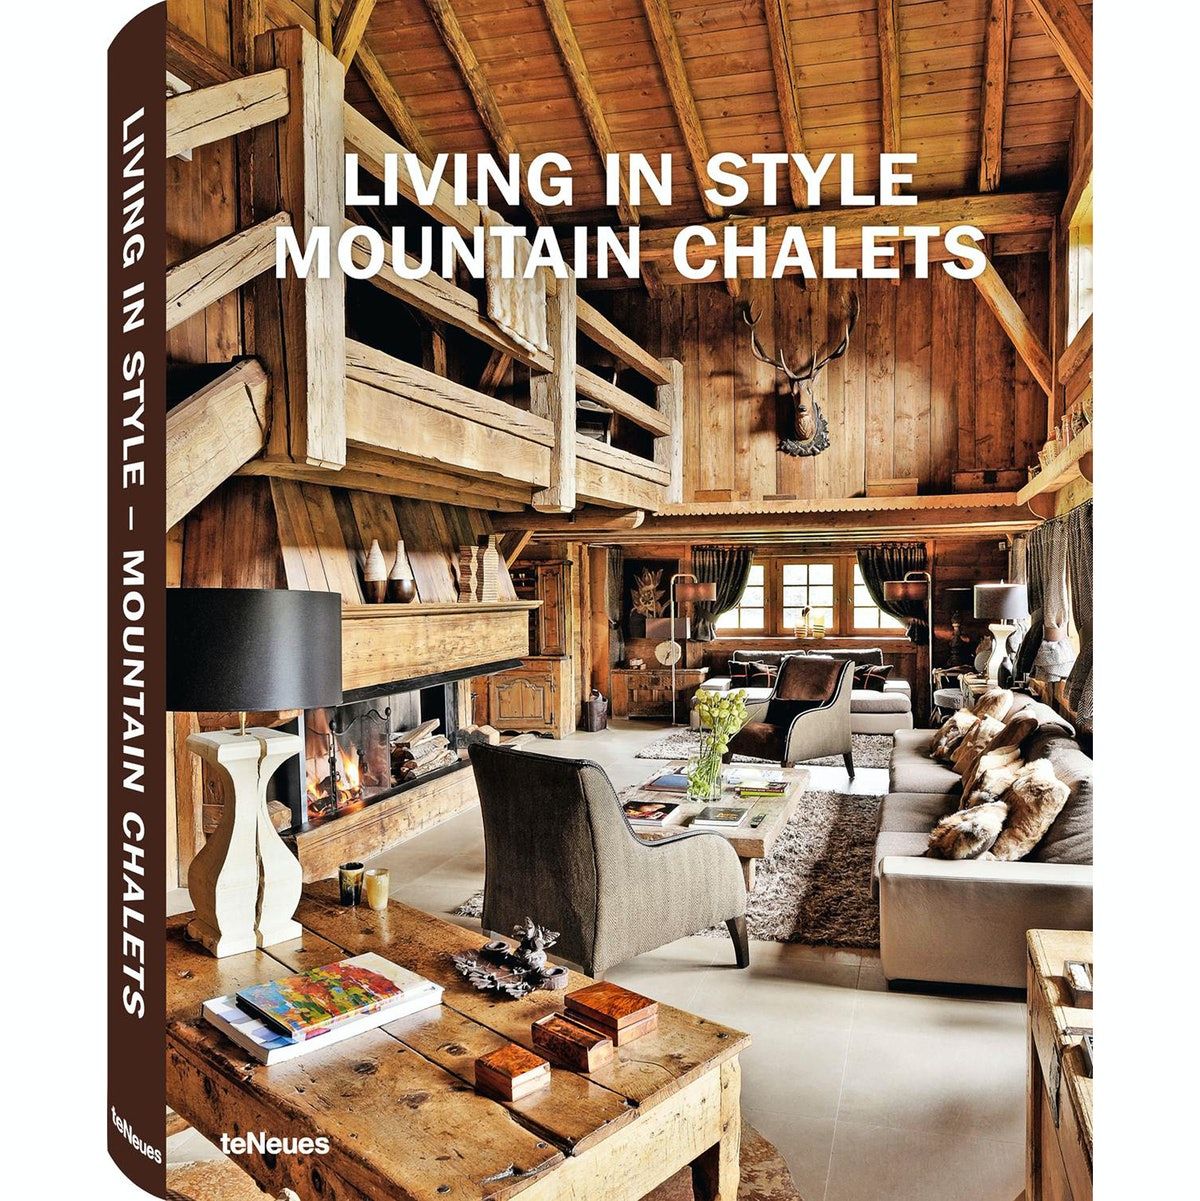 Living in Style—Mountain Chalets (teNeues)